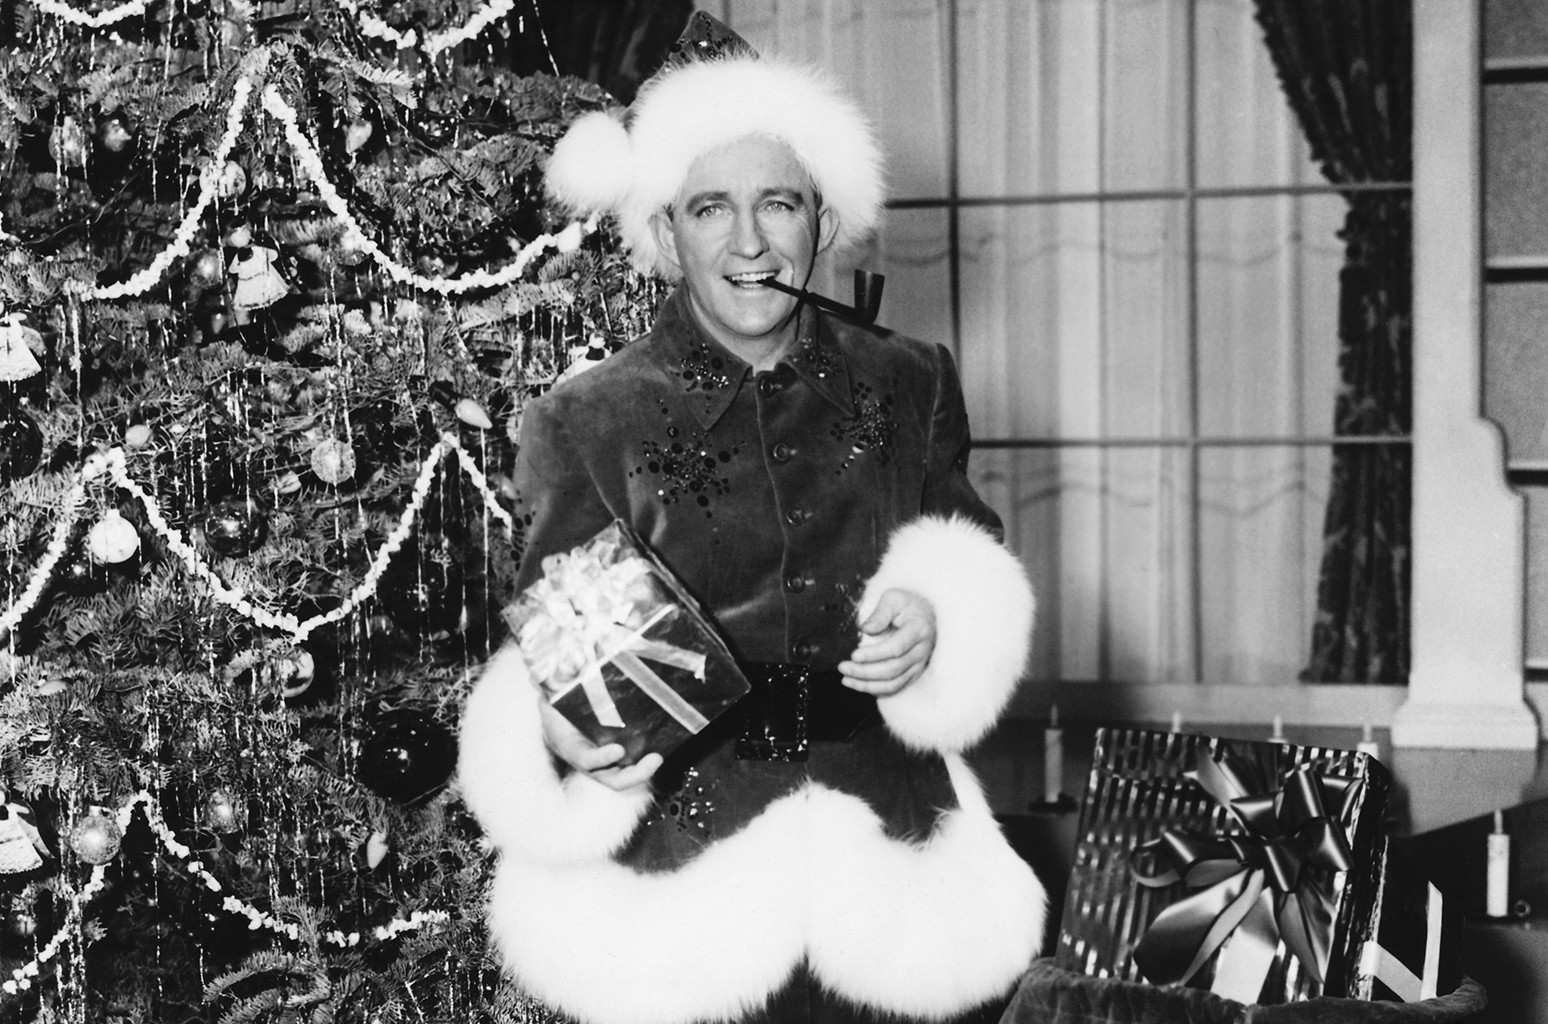 Bing Crosby, White Christmas